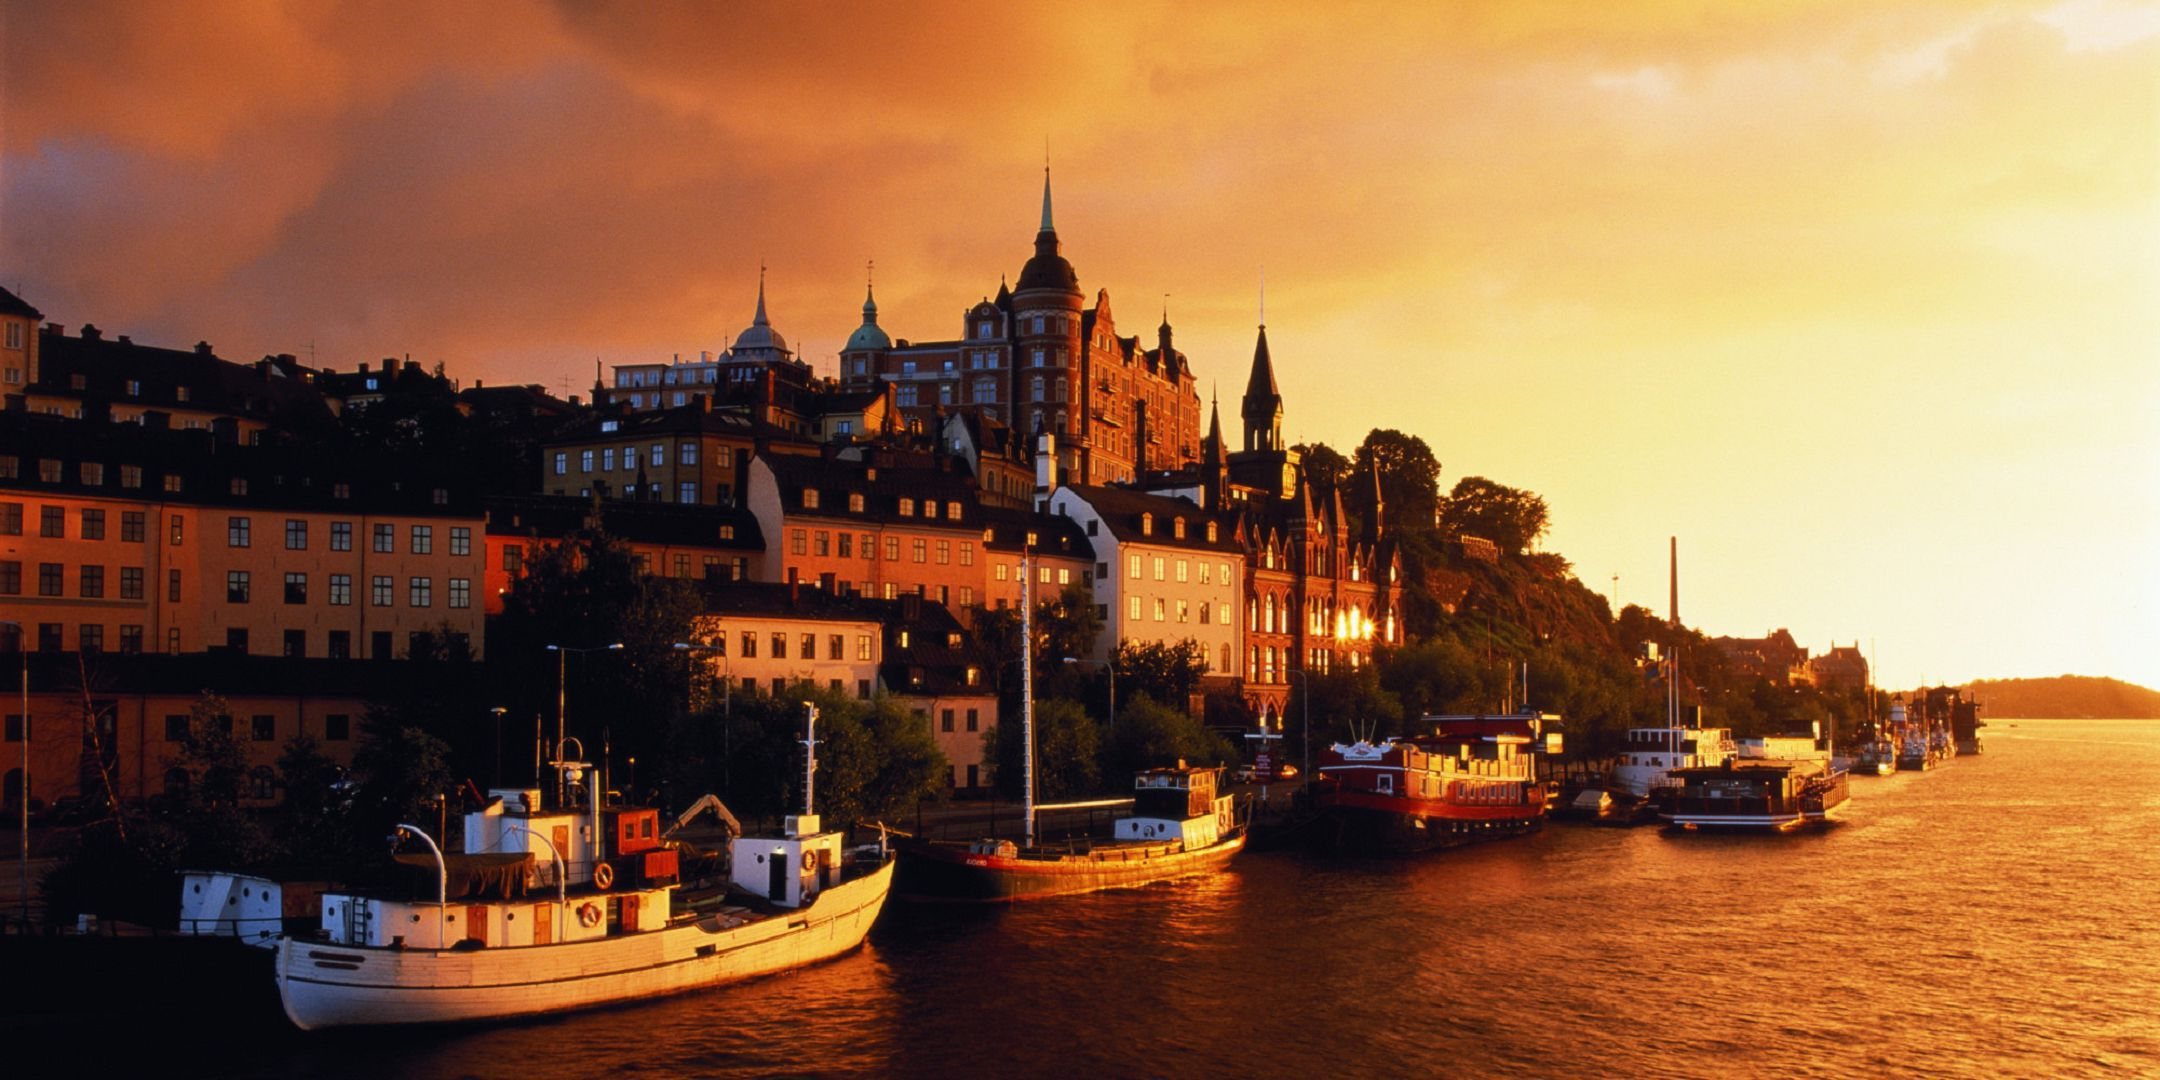 Stockholm wallpapers images photos pictures backgrounds - Wallpaper photos ...